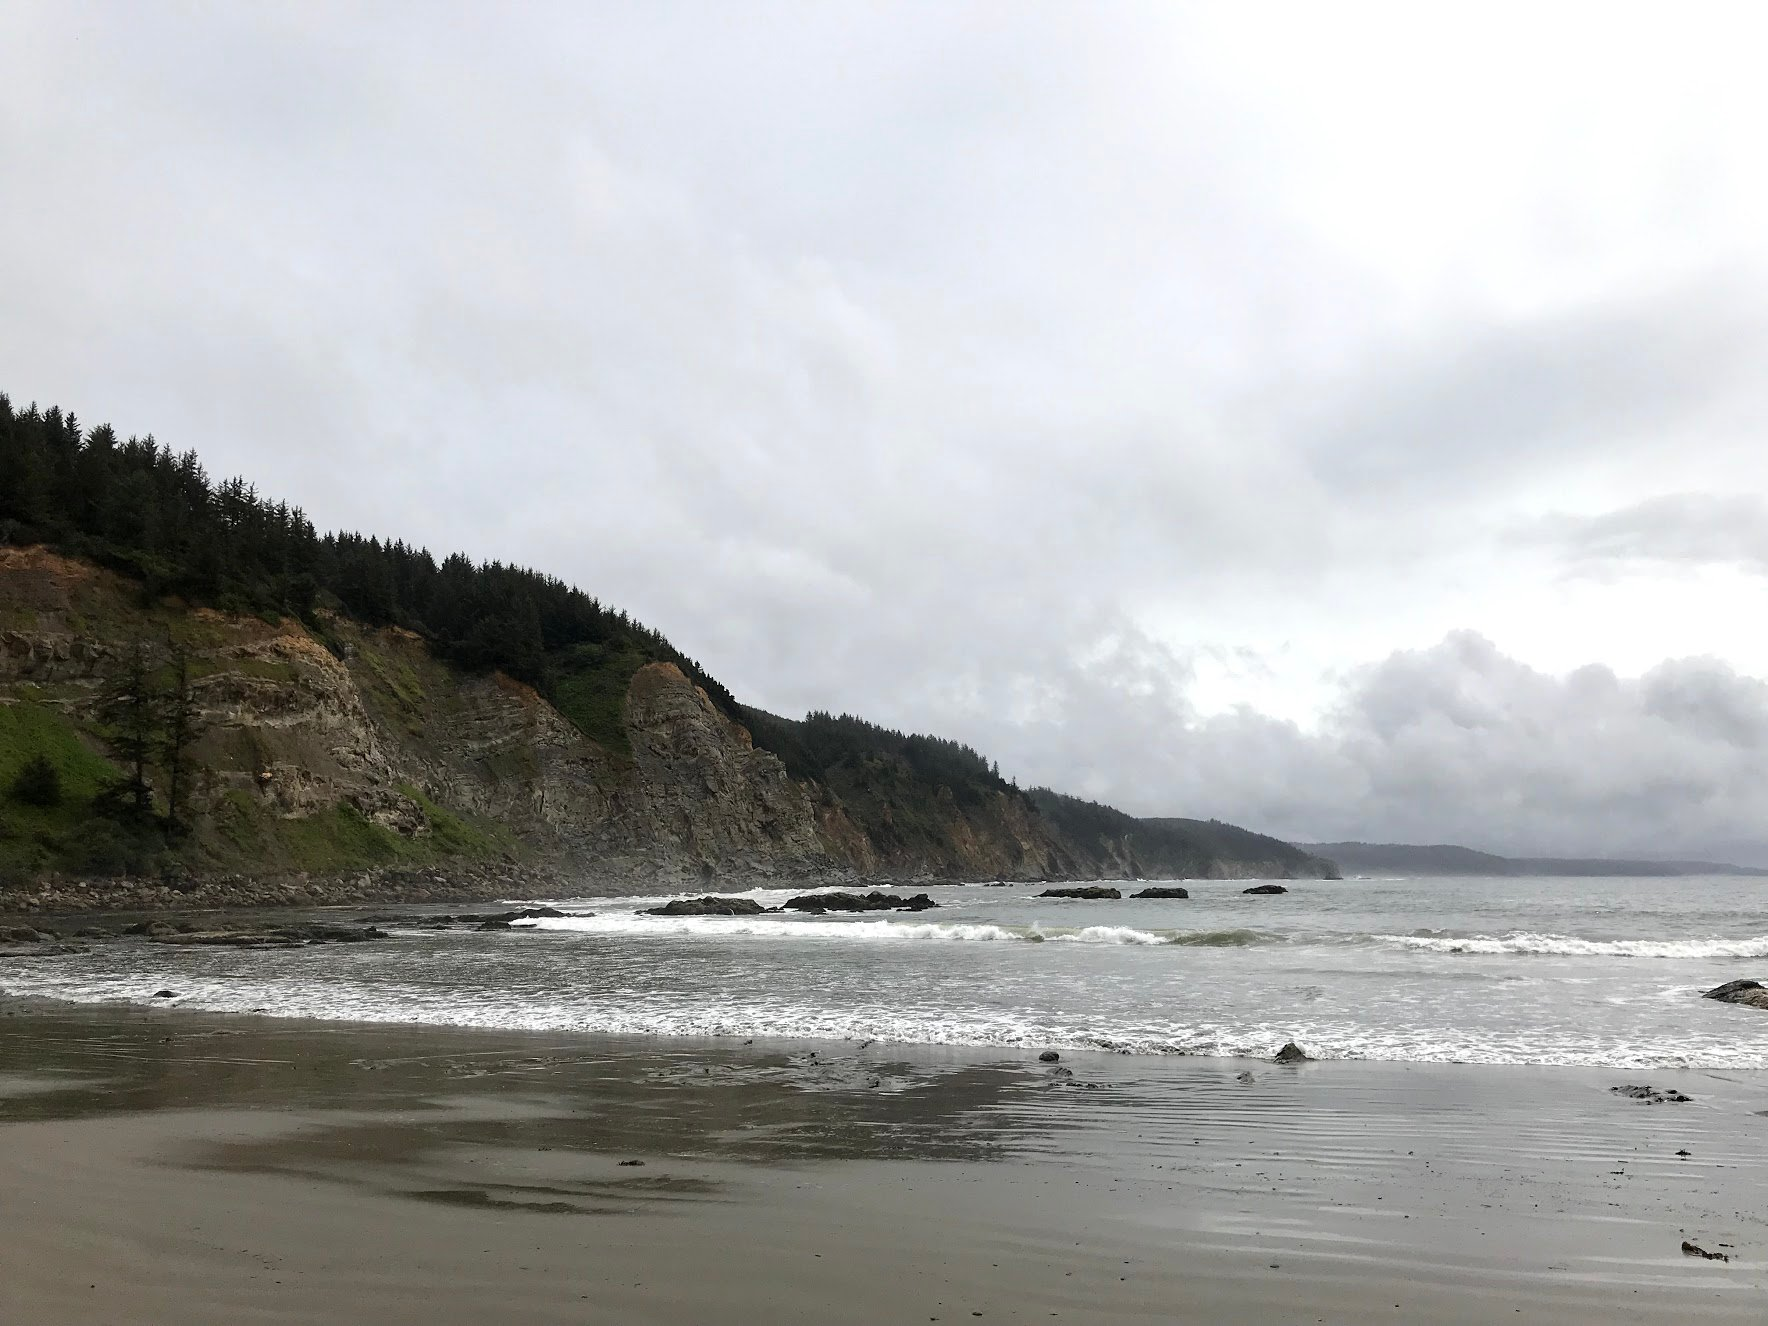 Beach at Cape Arago